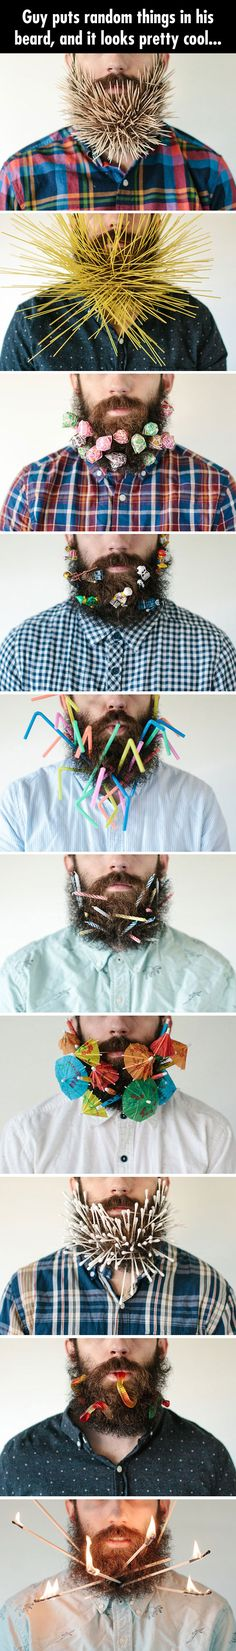 If you are bored and have a beard  // funny pictures - funny photos - funny images - funny pics - funny quotes - #lol #humor #funnypictures lollipop one is my favorite